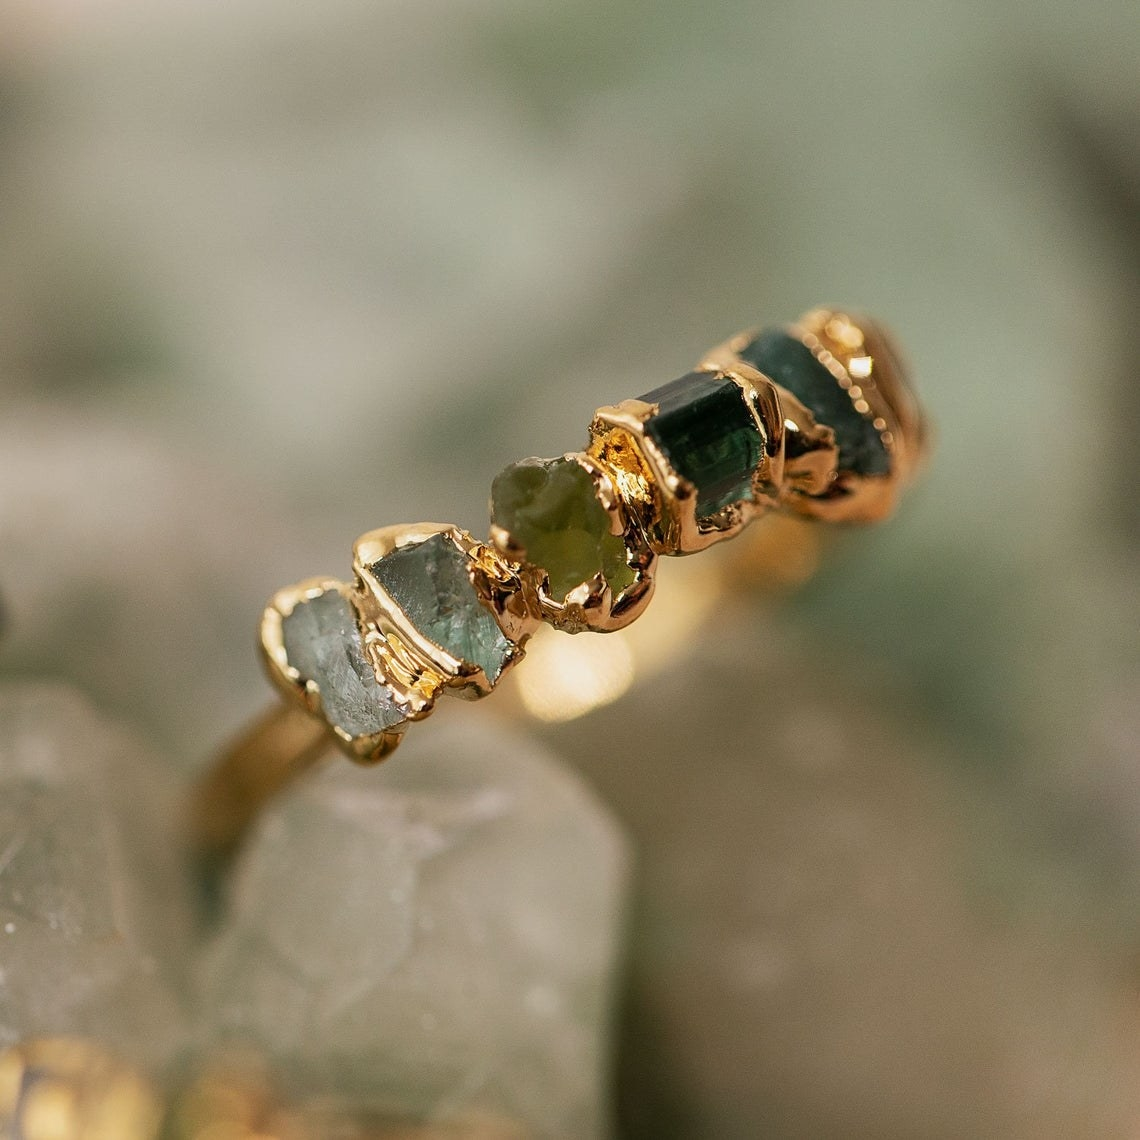 Band ring in gold with several small rough stones gilded in gold all in a line